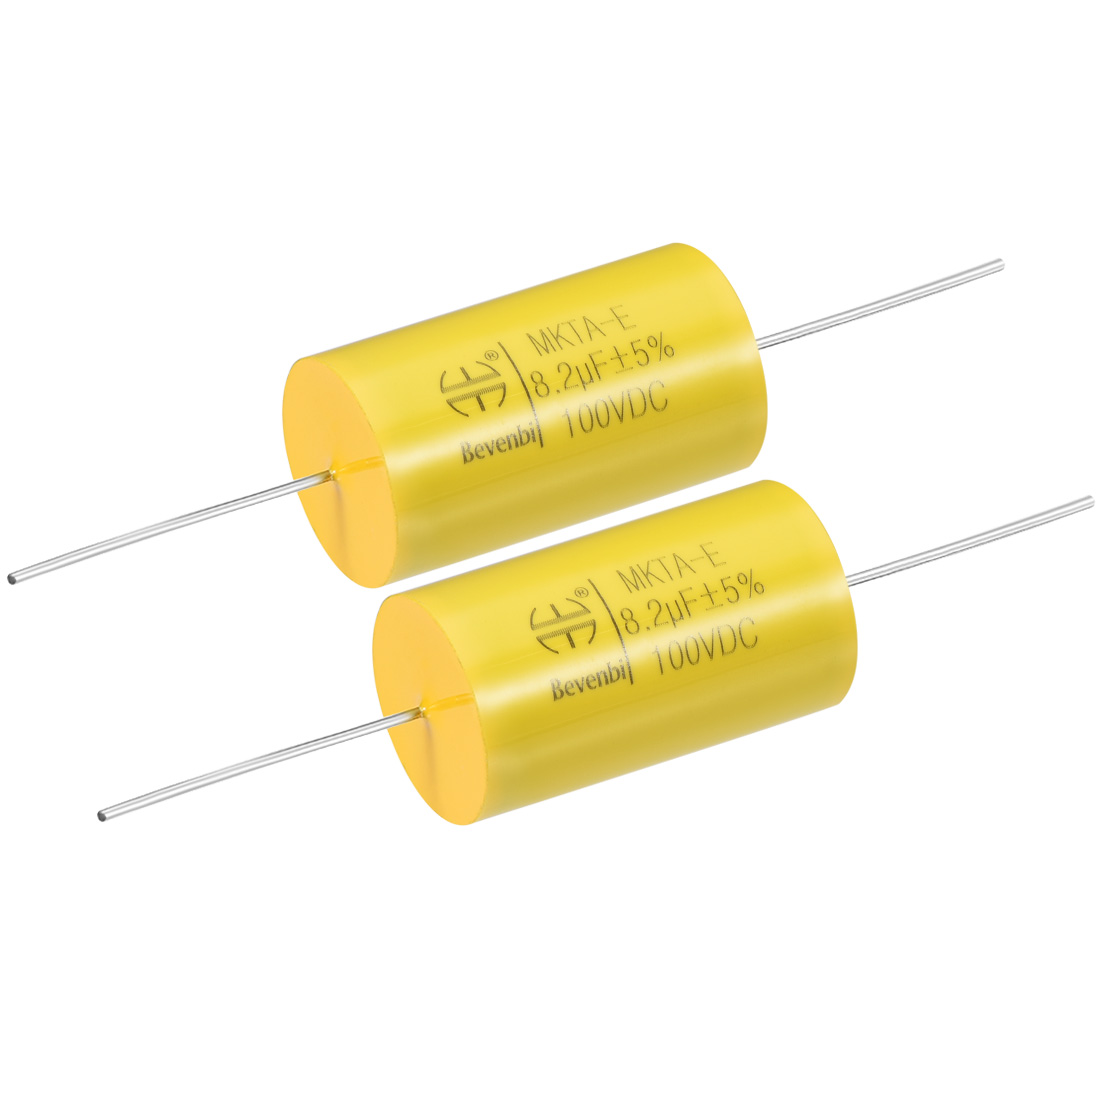 Film Capacitor 100V DC 8.2uF MKTA-E Round Polypropylene Capacitors Yellow 2pcs